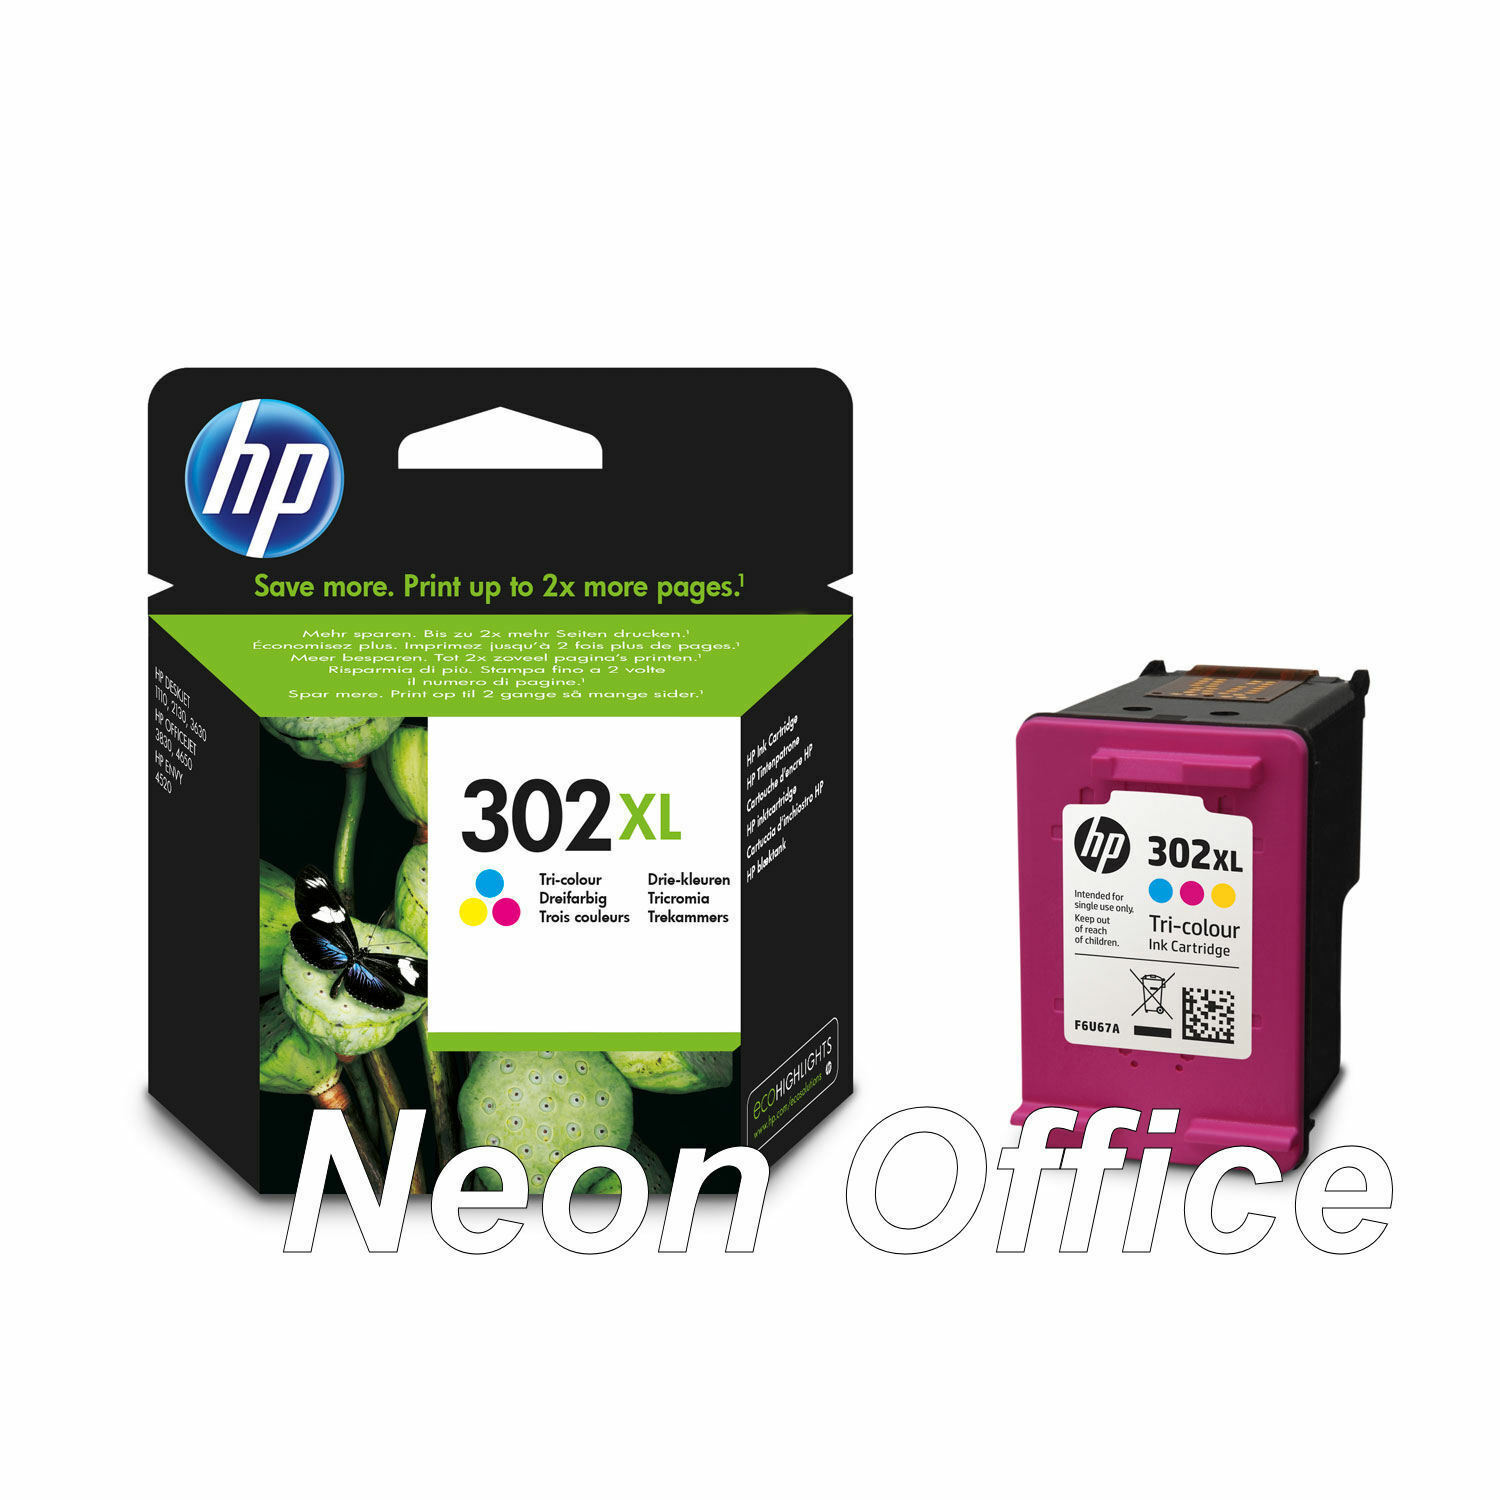 Original HP 302XL Colour Ink Cartridge For DeskJet 2130 Inkjet Printer 1 of 3 ly 2 available Original HP 302XL Colour Ink Cartridge For DeskJet 2130